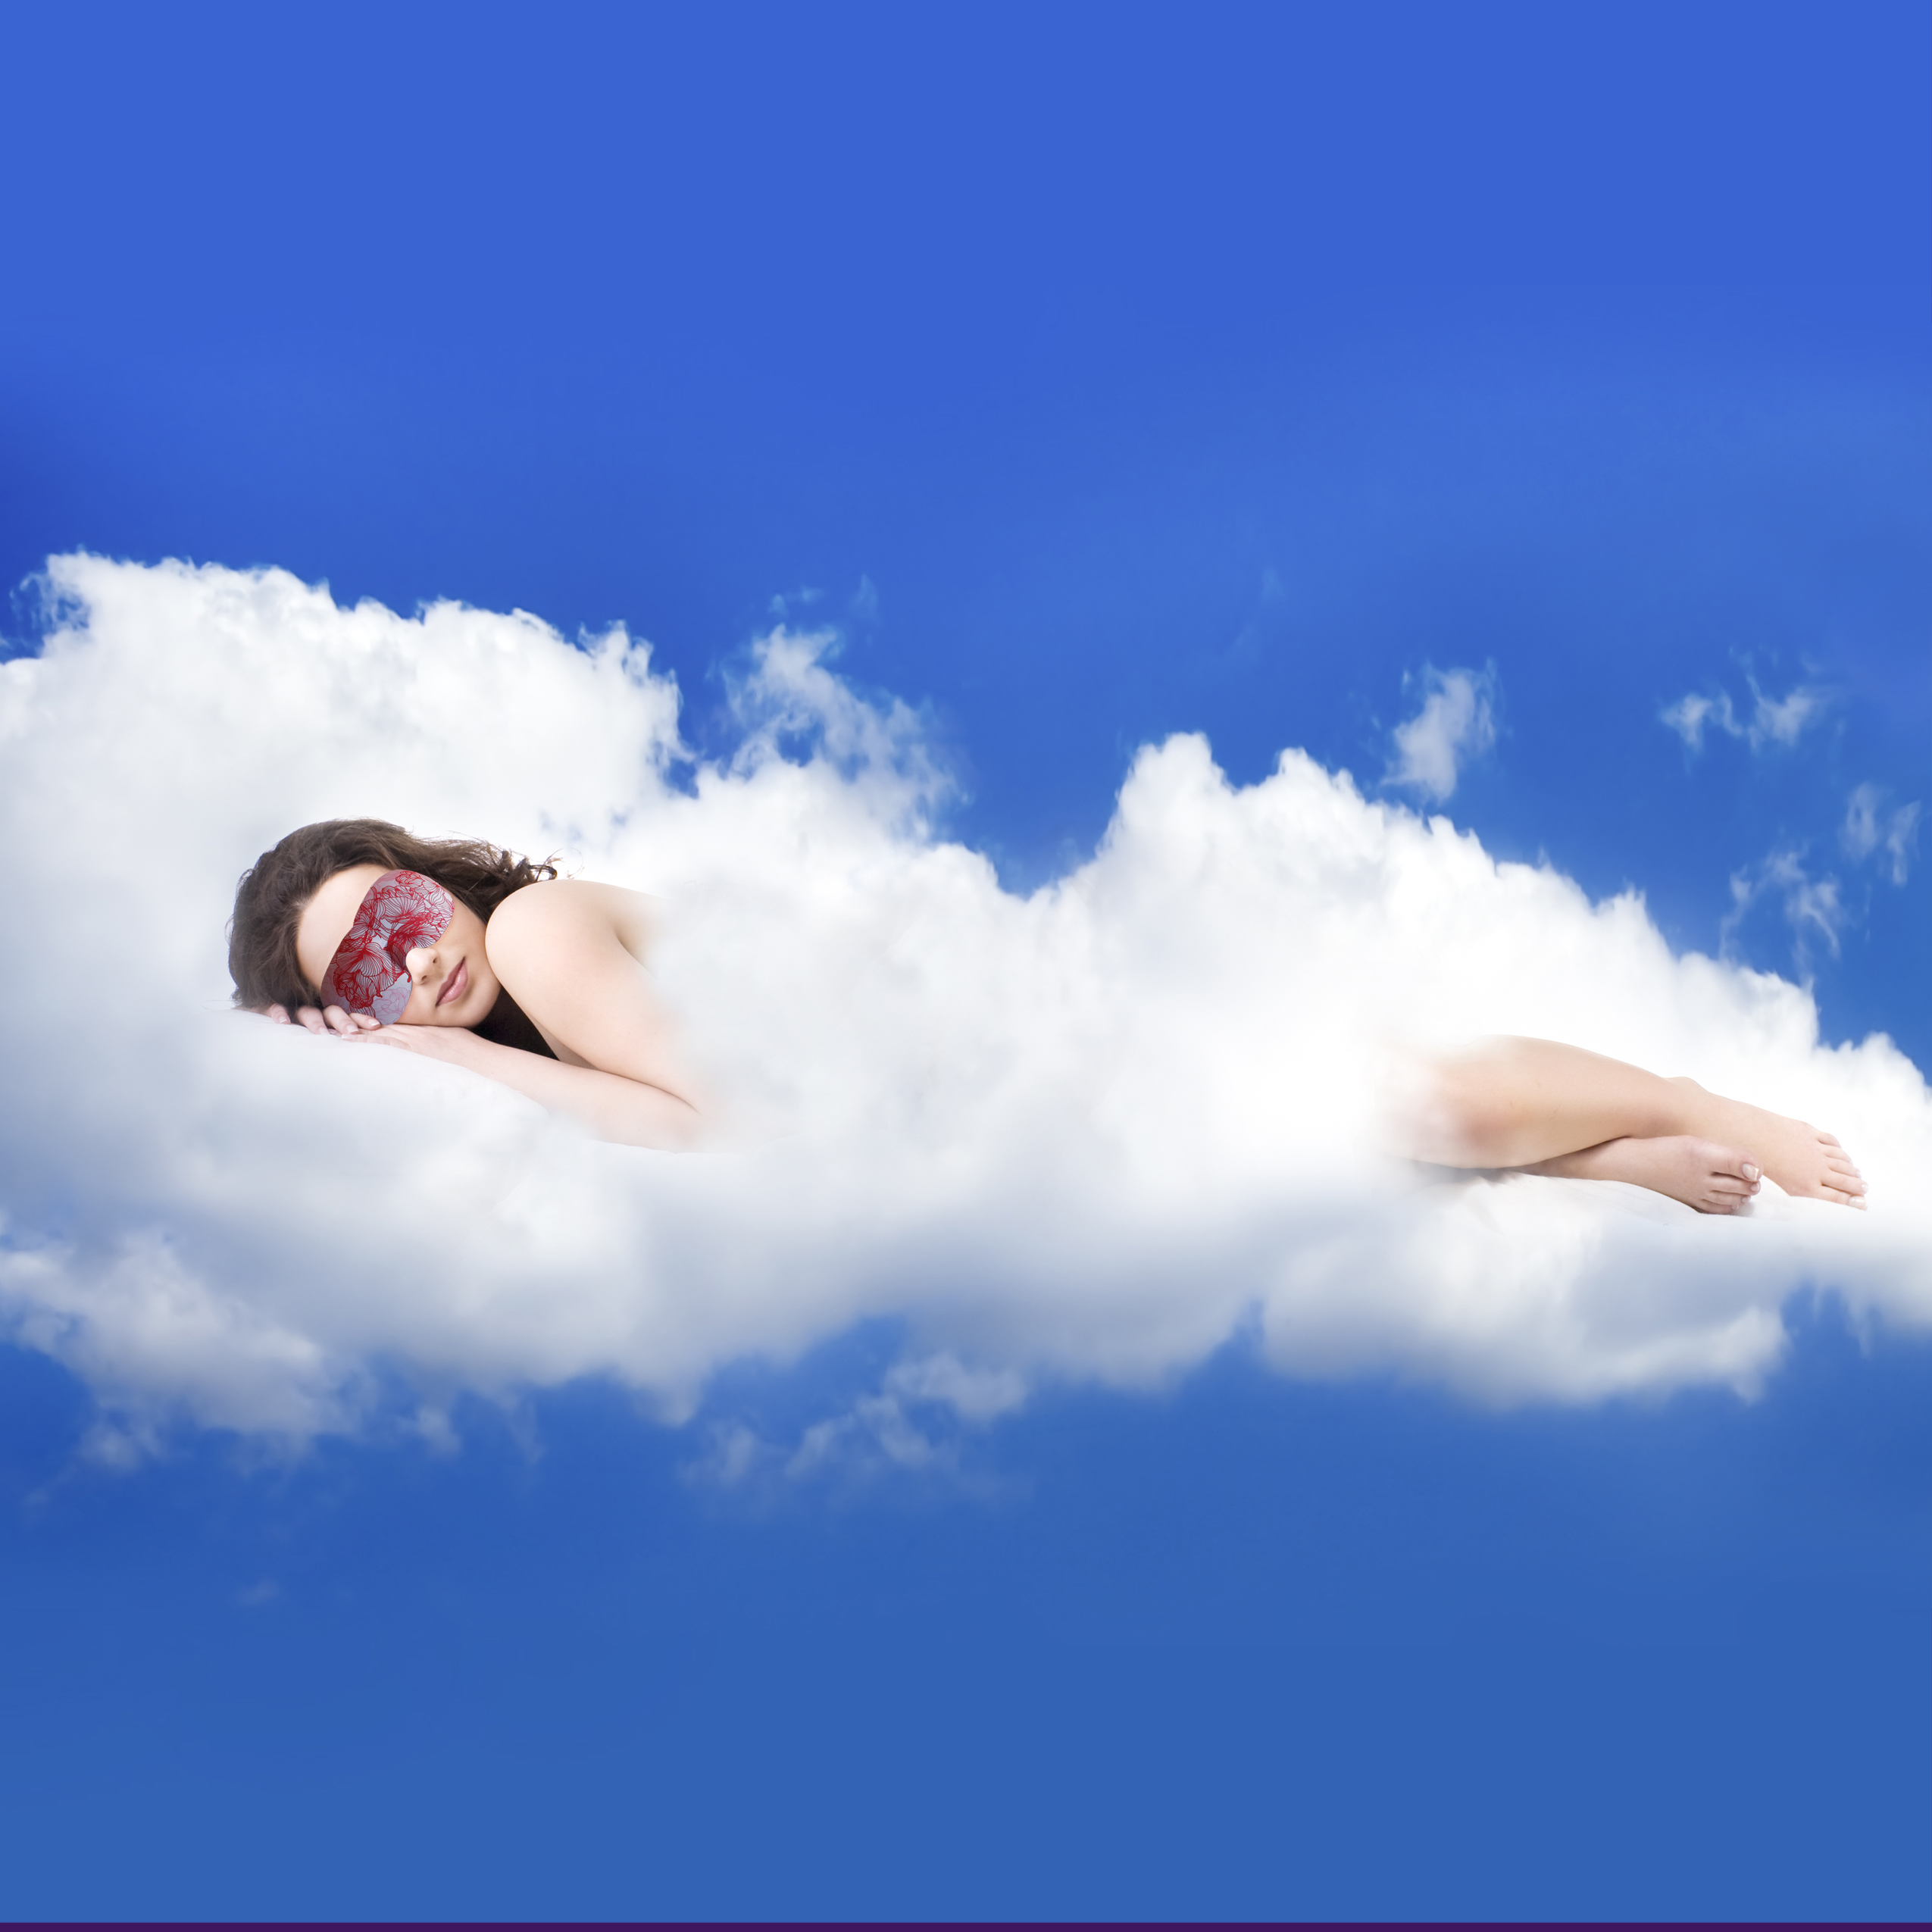 5 - EM3513 - Midnight Roses - Lady in the Cloud.jpg